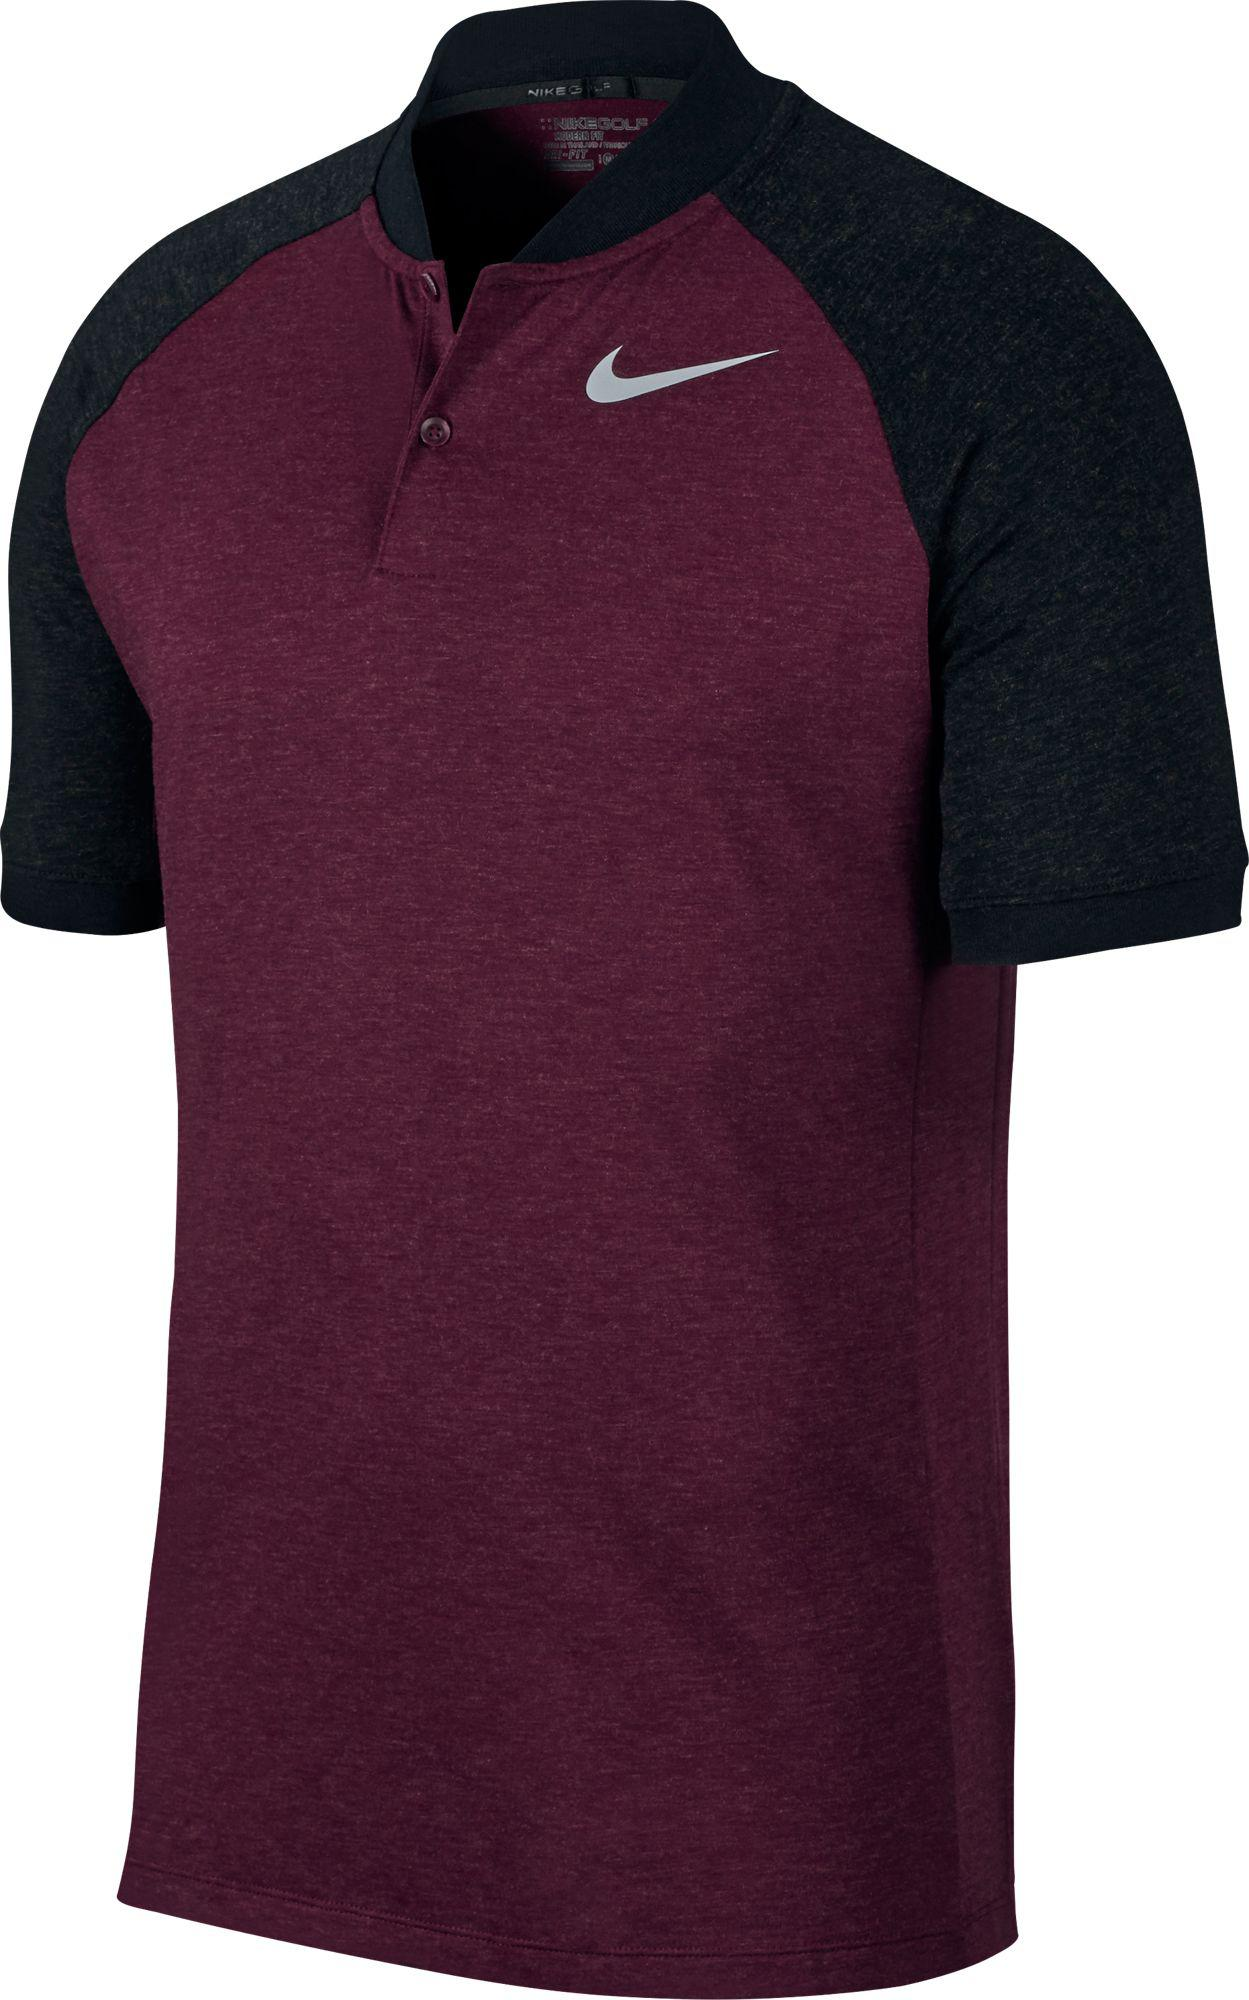 30ceb5038 Gallery. Previously sold at: Dick's Sporting Goods · Men's Logo T Shirts  Men's Nike ...